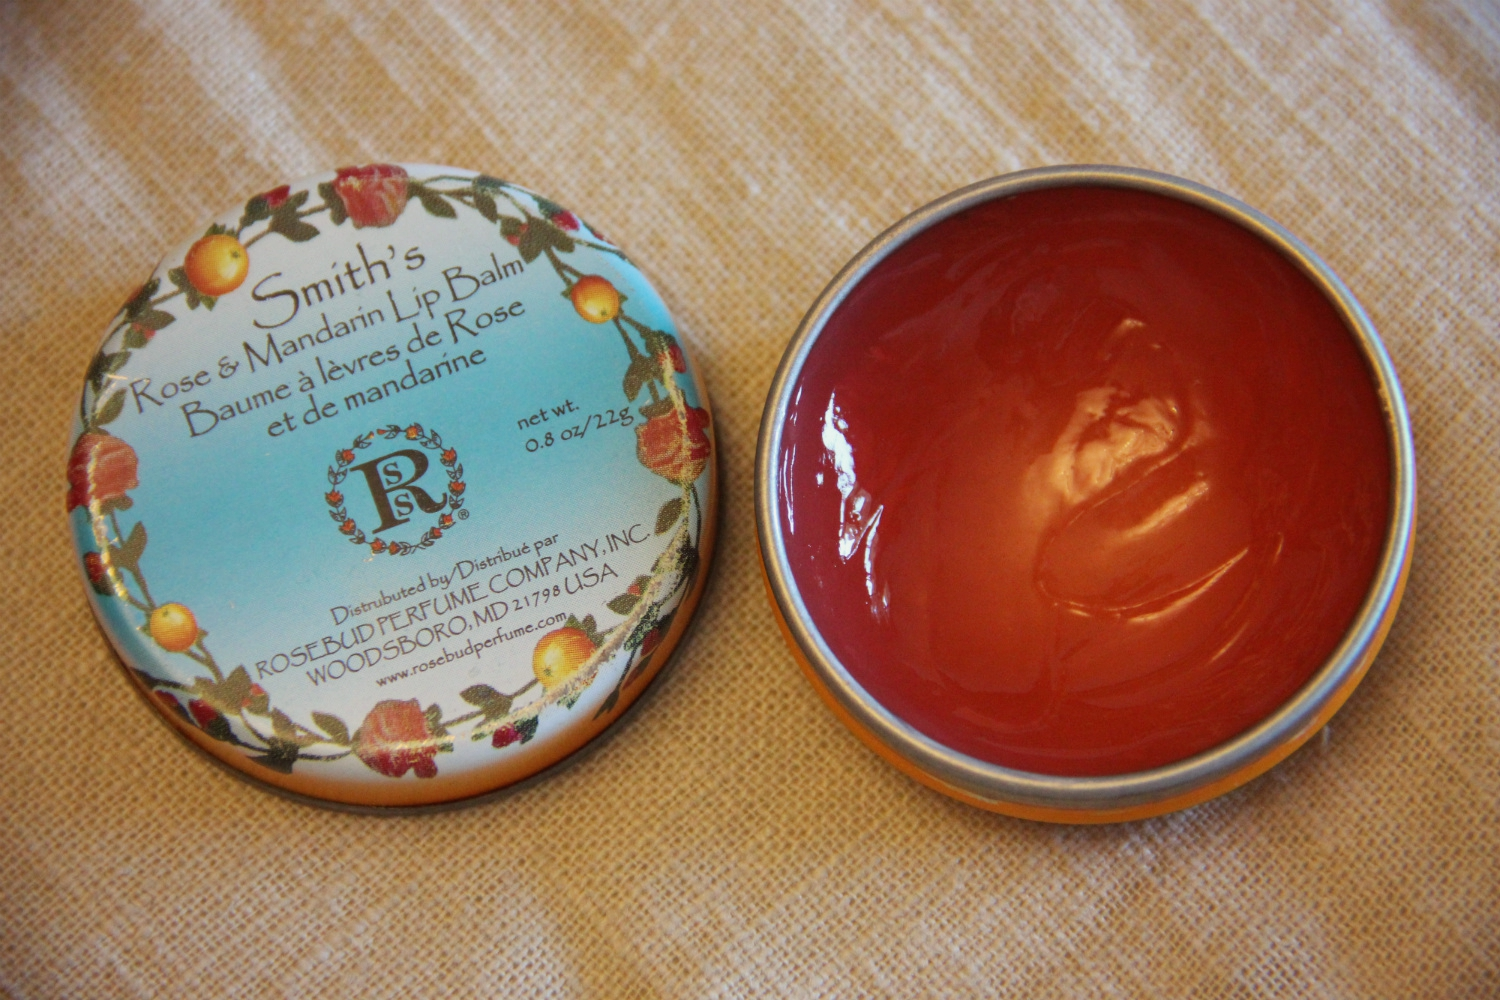 Блеск для губ Smith's Rose & Mandarin от Rosebud